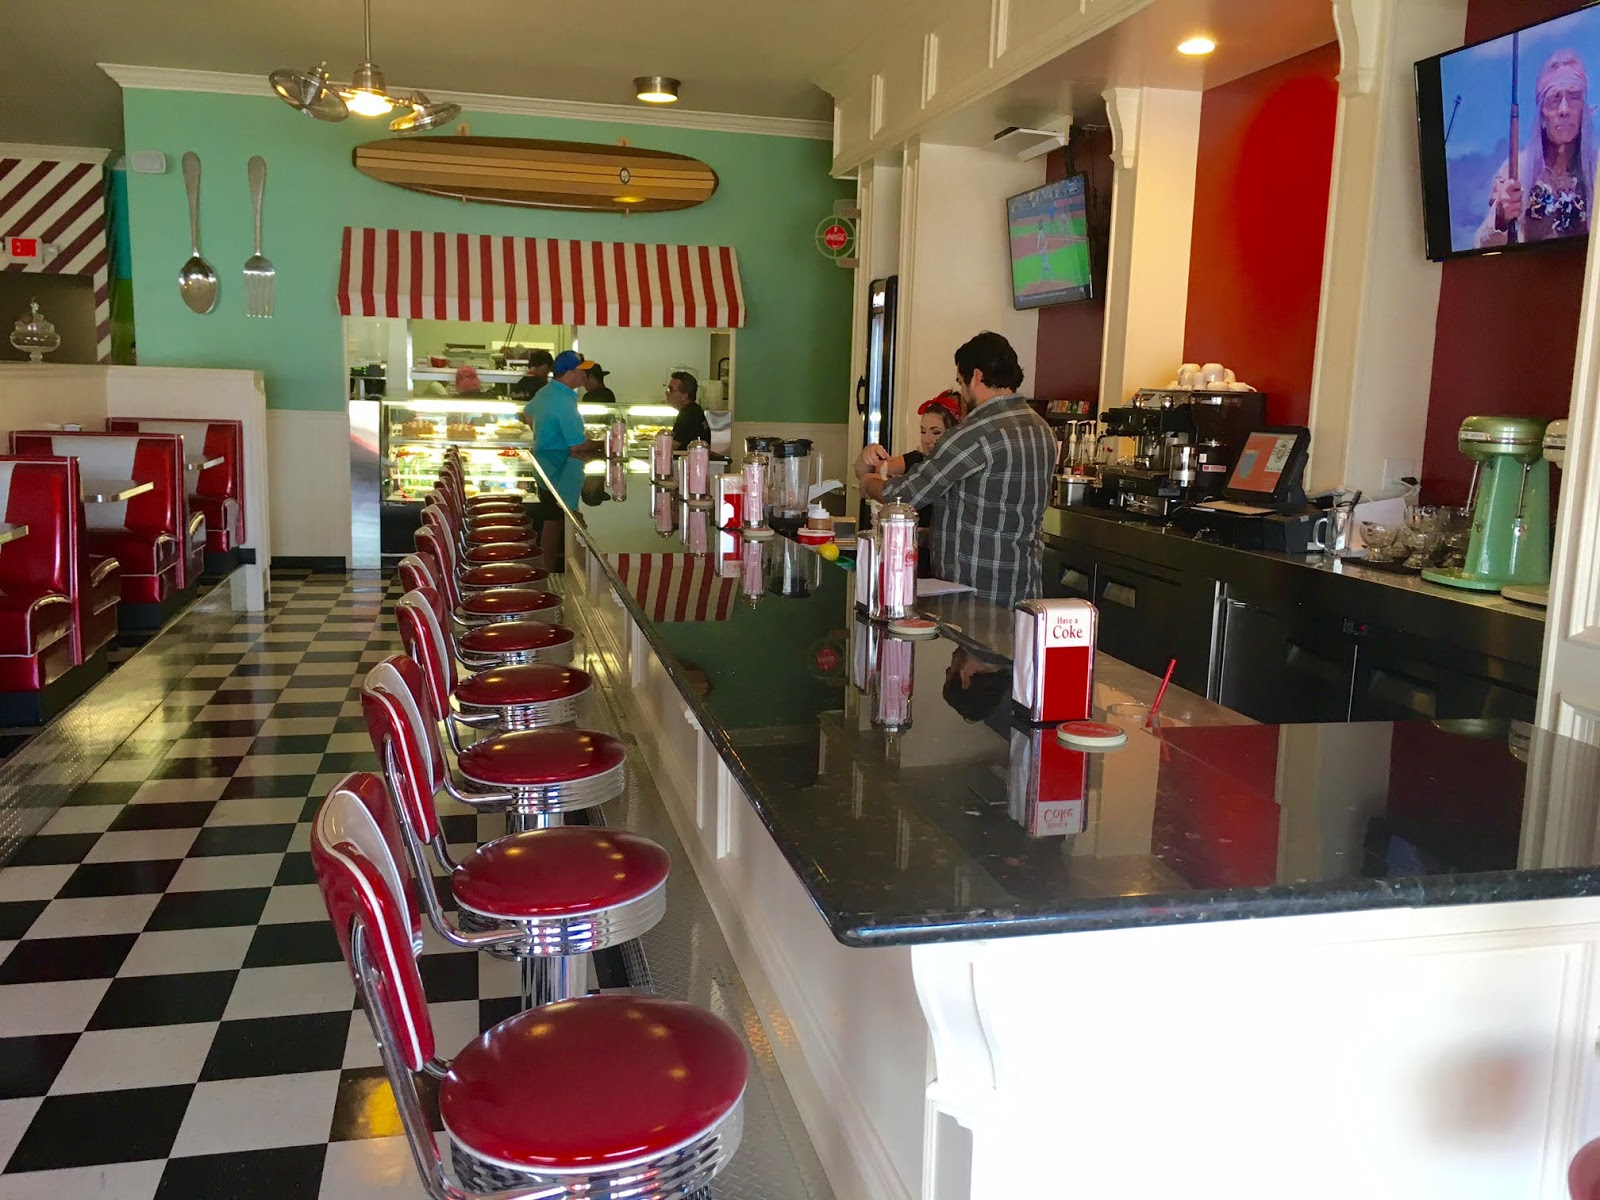 In Time With It S 50s Era Diner Decor That Includes A Black And White Tiled Floor Dessert Display Red Vinyl Booths Celebrity Photos